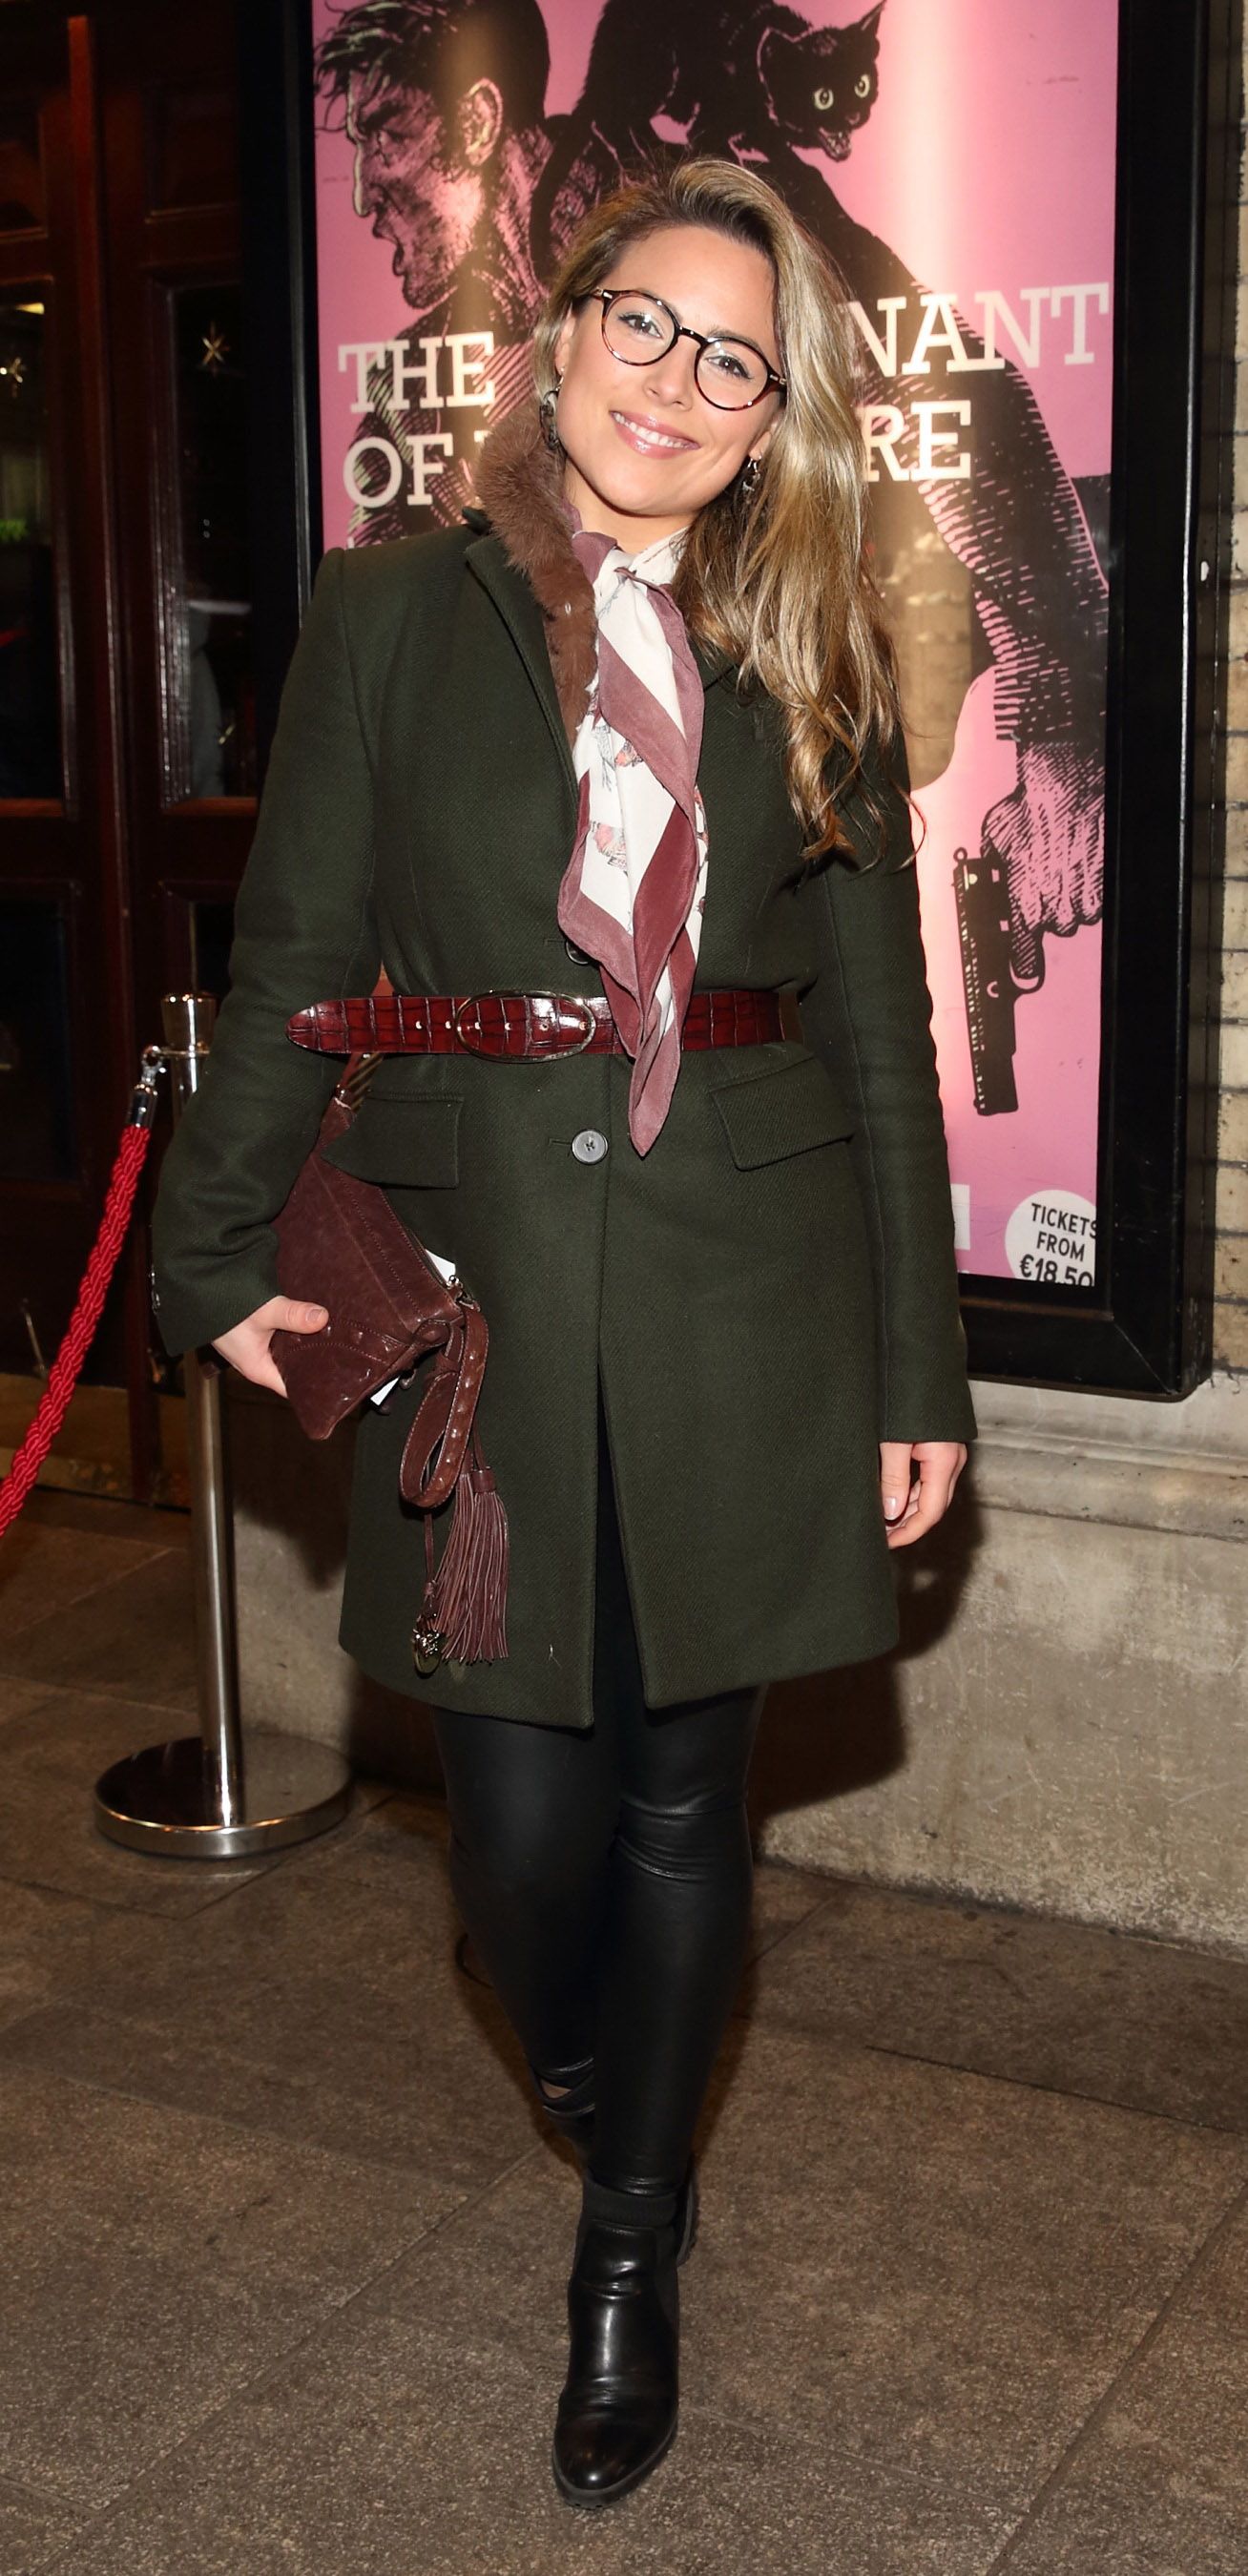 Chloe Townsend pictured at the opening of the Gaiety Theatre's major new production of Martin McDonagh's 'The Lieutenant of Inishmore', which will run at the Gaiety Theatre until 14th March.